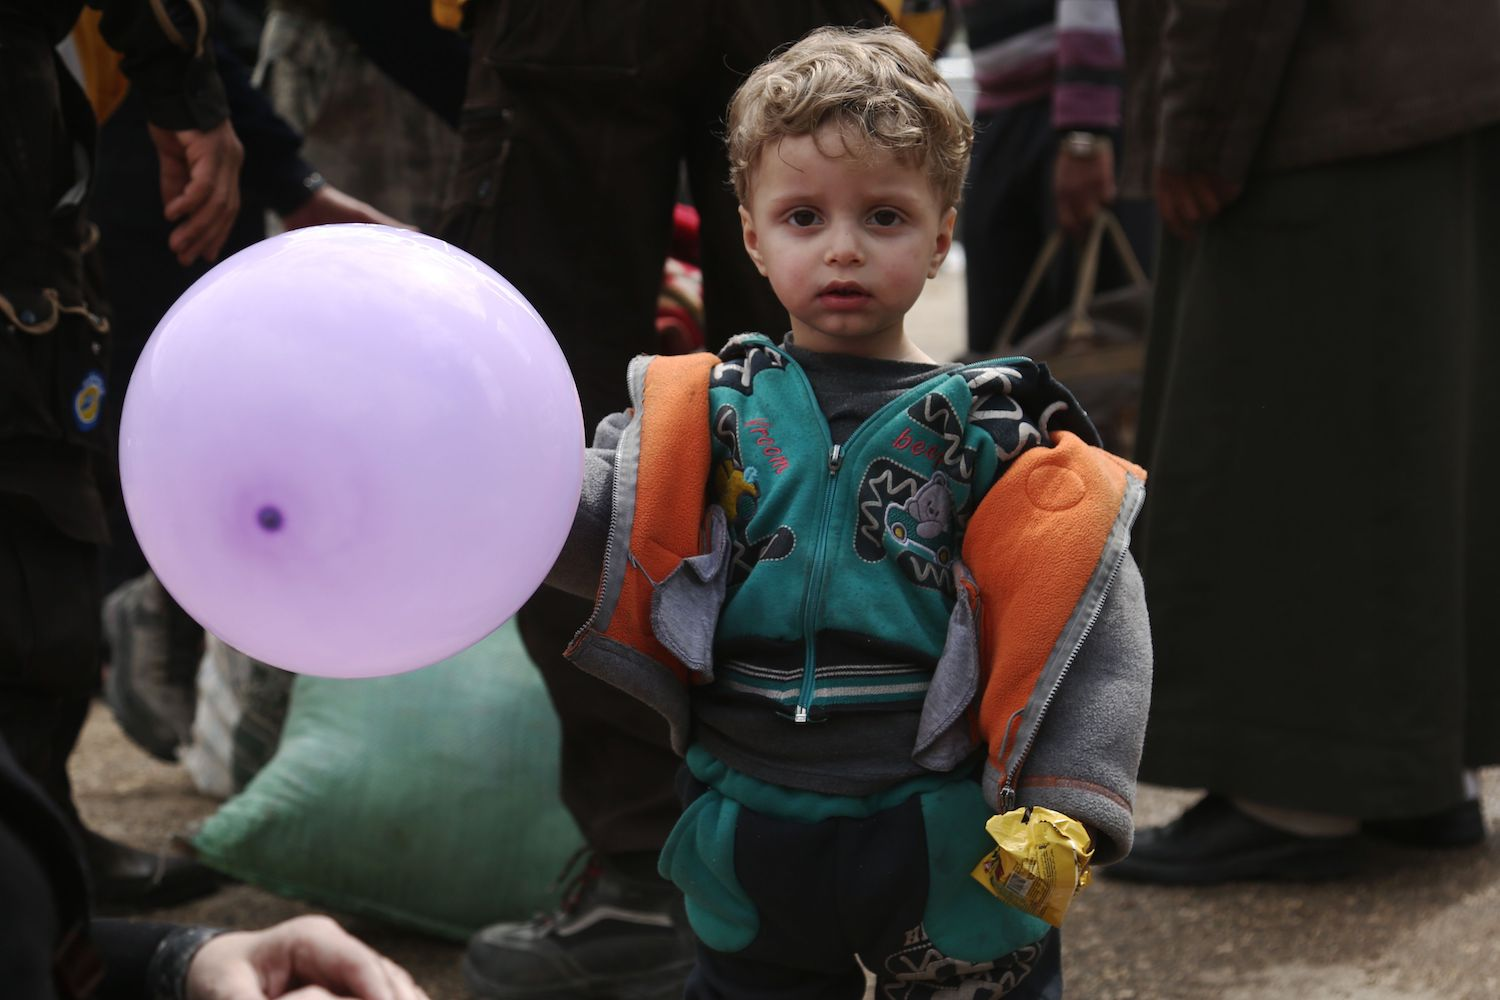 A Syrian boy plays with a balloon upon arriving with a convoy carrying civilians and rebel fighters in the village of Qalaat al-Madiq, north of Hama on March 25, after being evacuated from Eastern Ghouta following a deal with the regime. The deal is expected to see some 7,000 people bussed from Arbin and Zamalka towns and the district of Jobar to a rebel-dominated part of northern Syria. / AFP PHOTO / Zein Al RIFAI        (Photo credit should read ZEIN AL RIFAI/AFP/Getty Images)